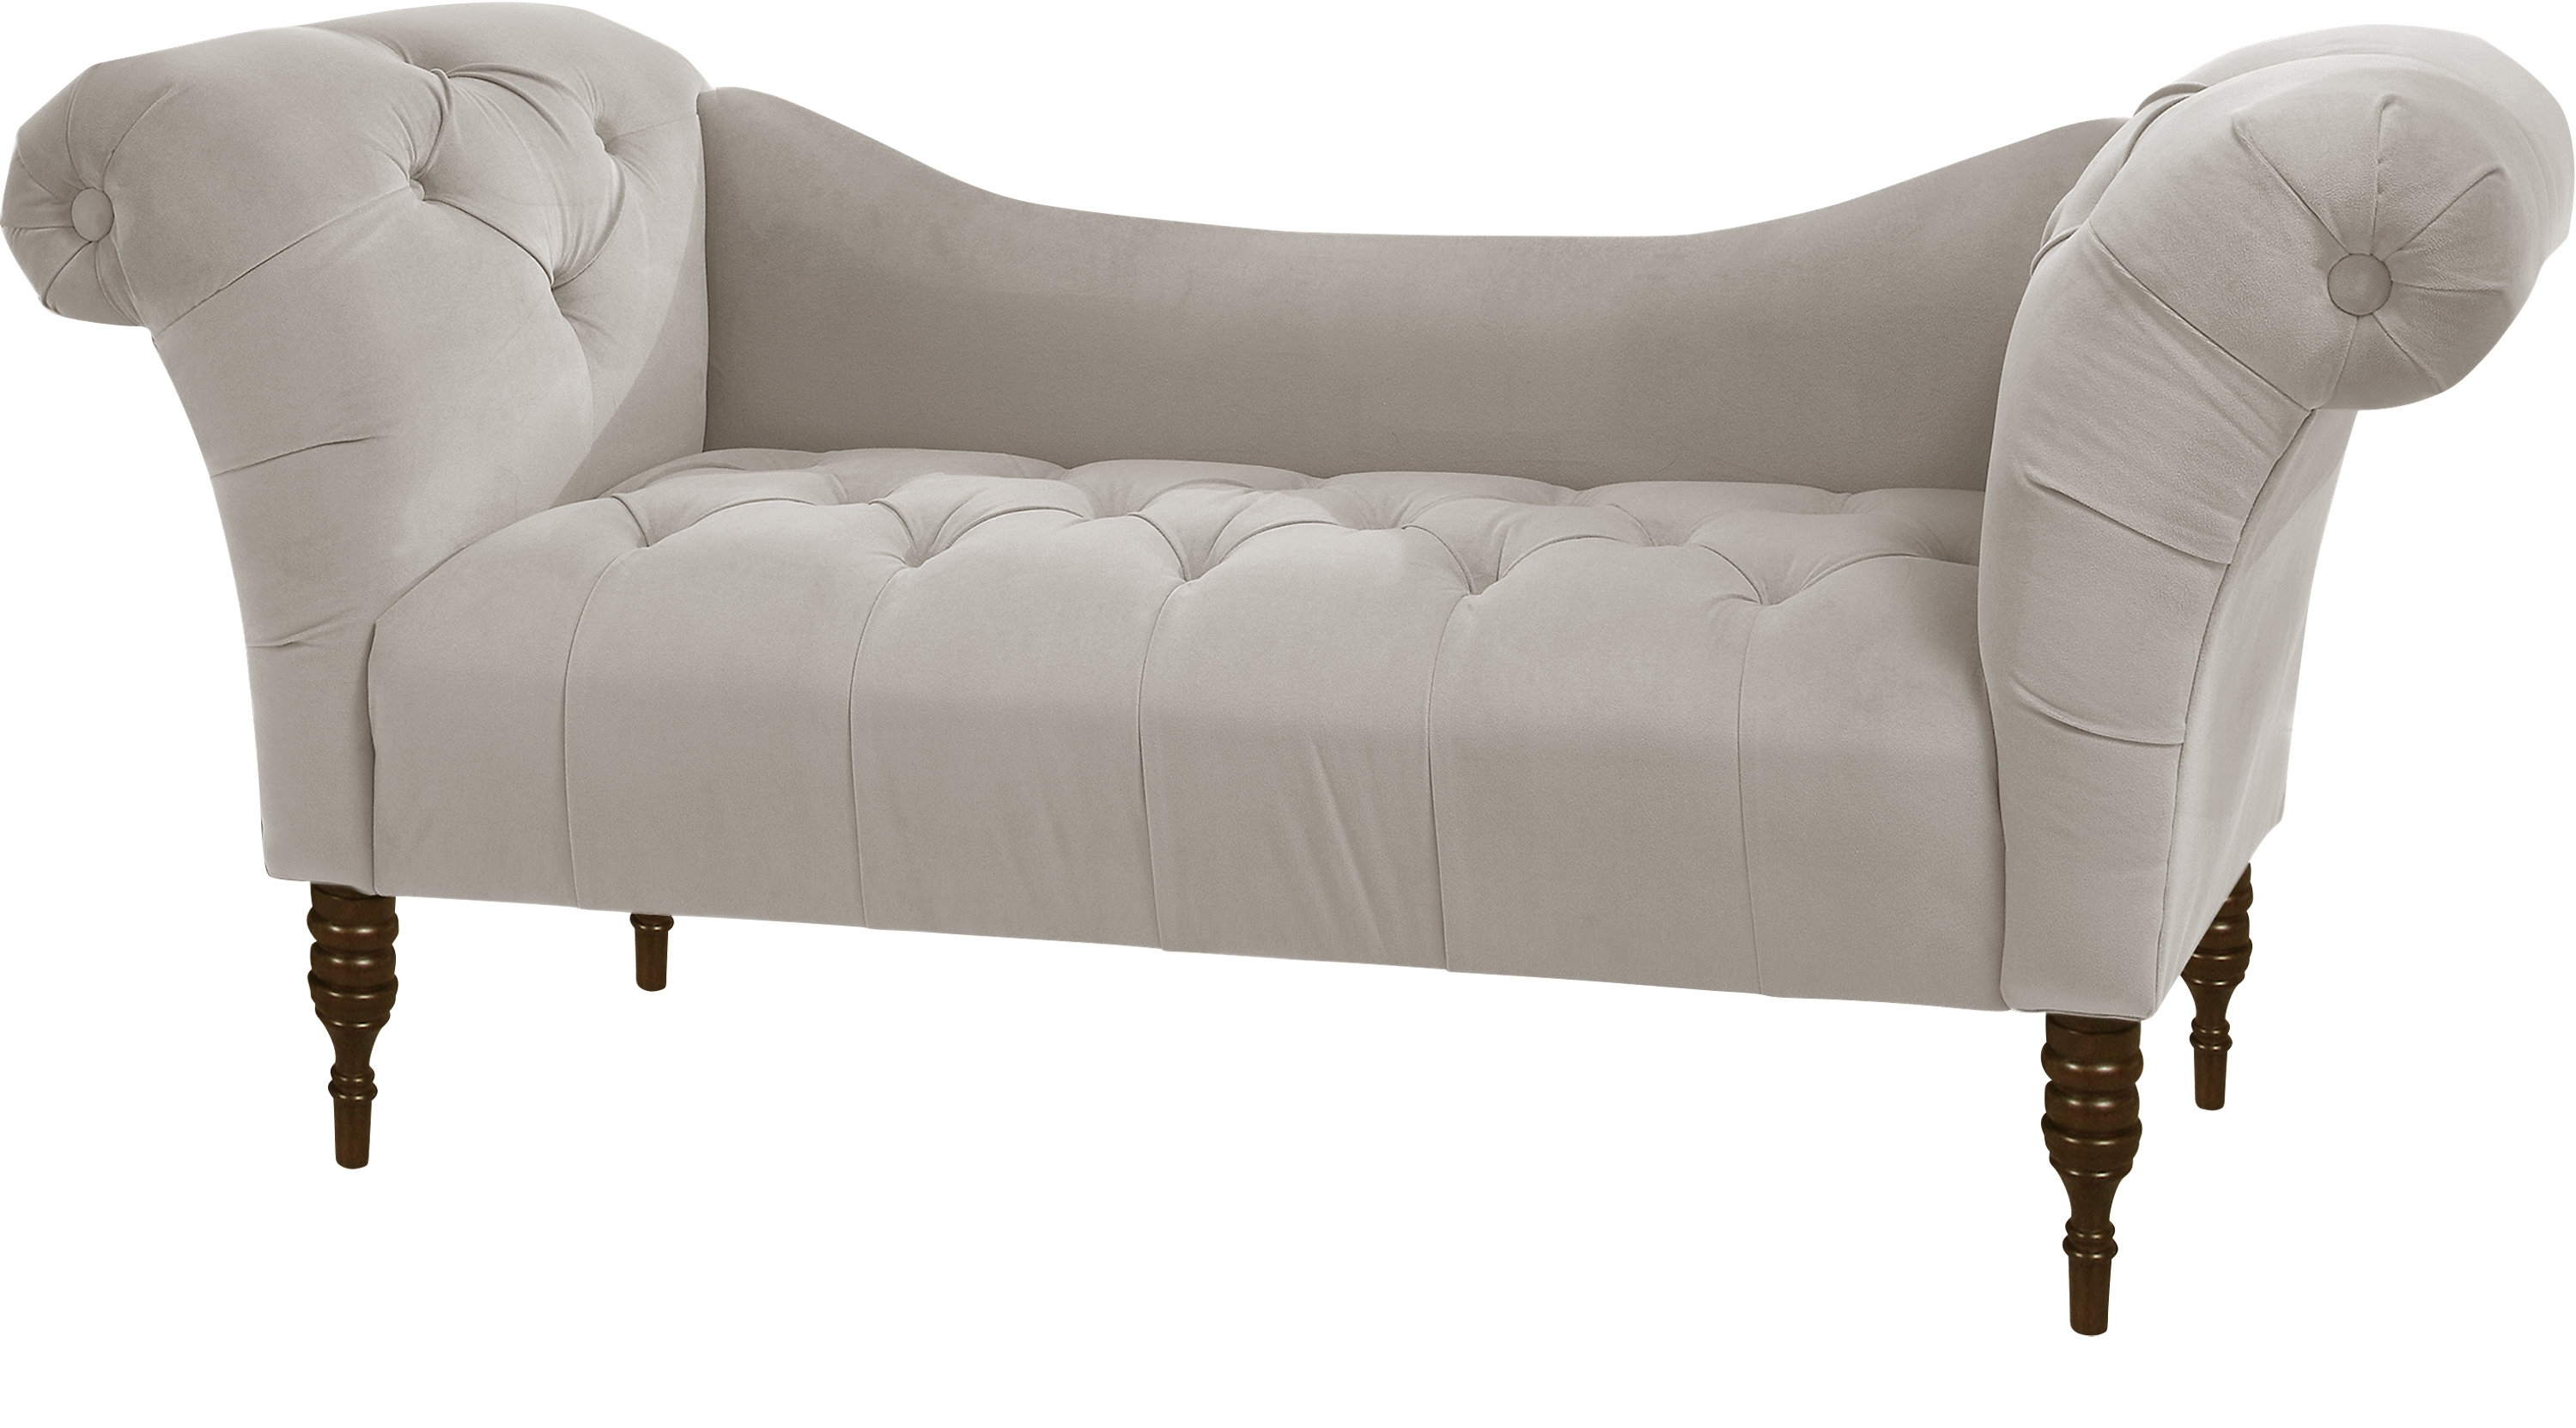 Grey Chaises – Grey Chaise Lounge Sofas With Most Recently Released Chaise Lounge Benchs (View 9 of 15)